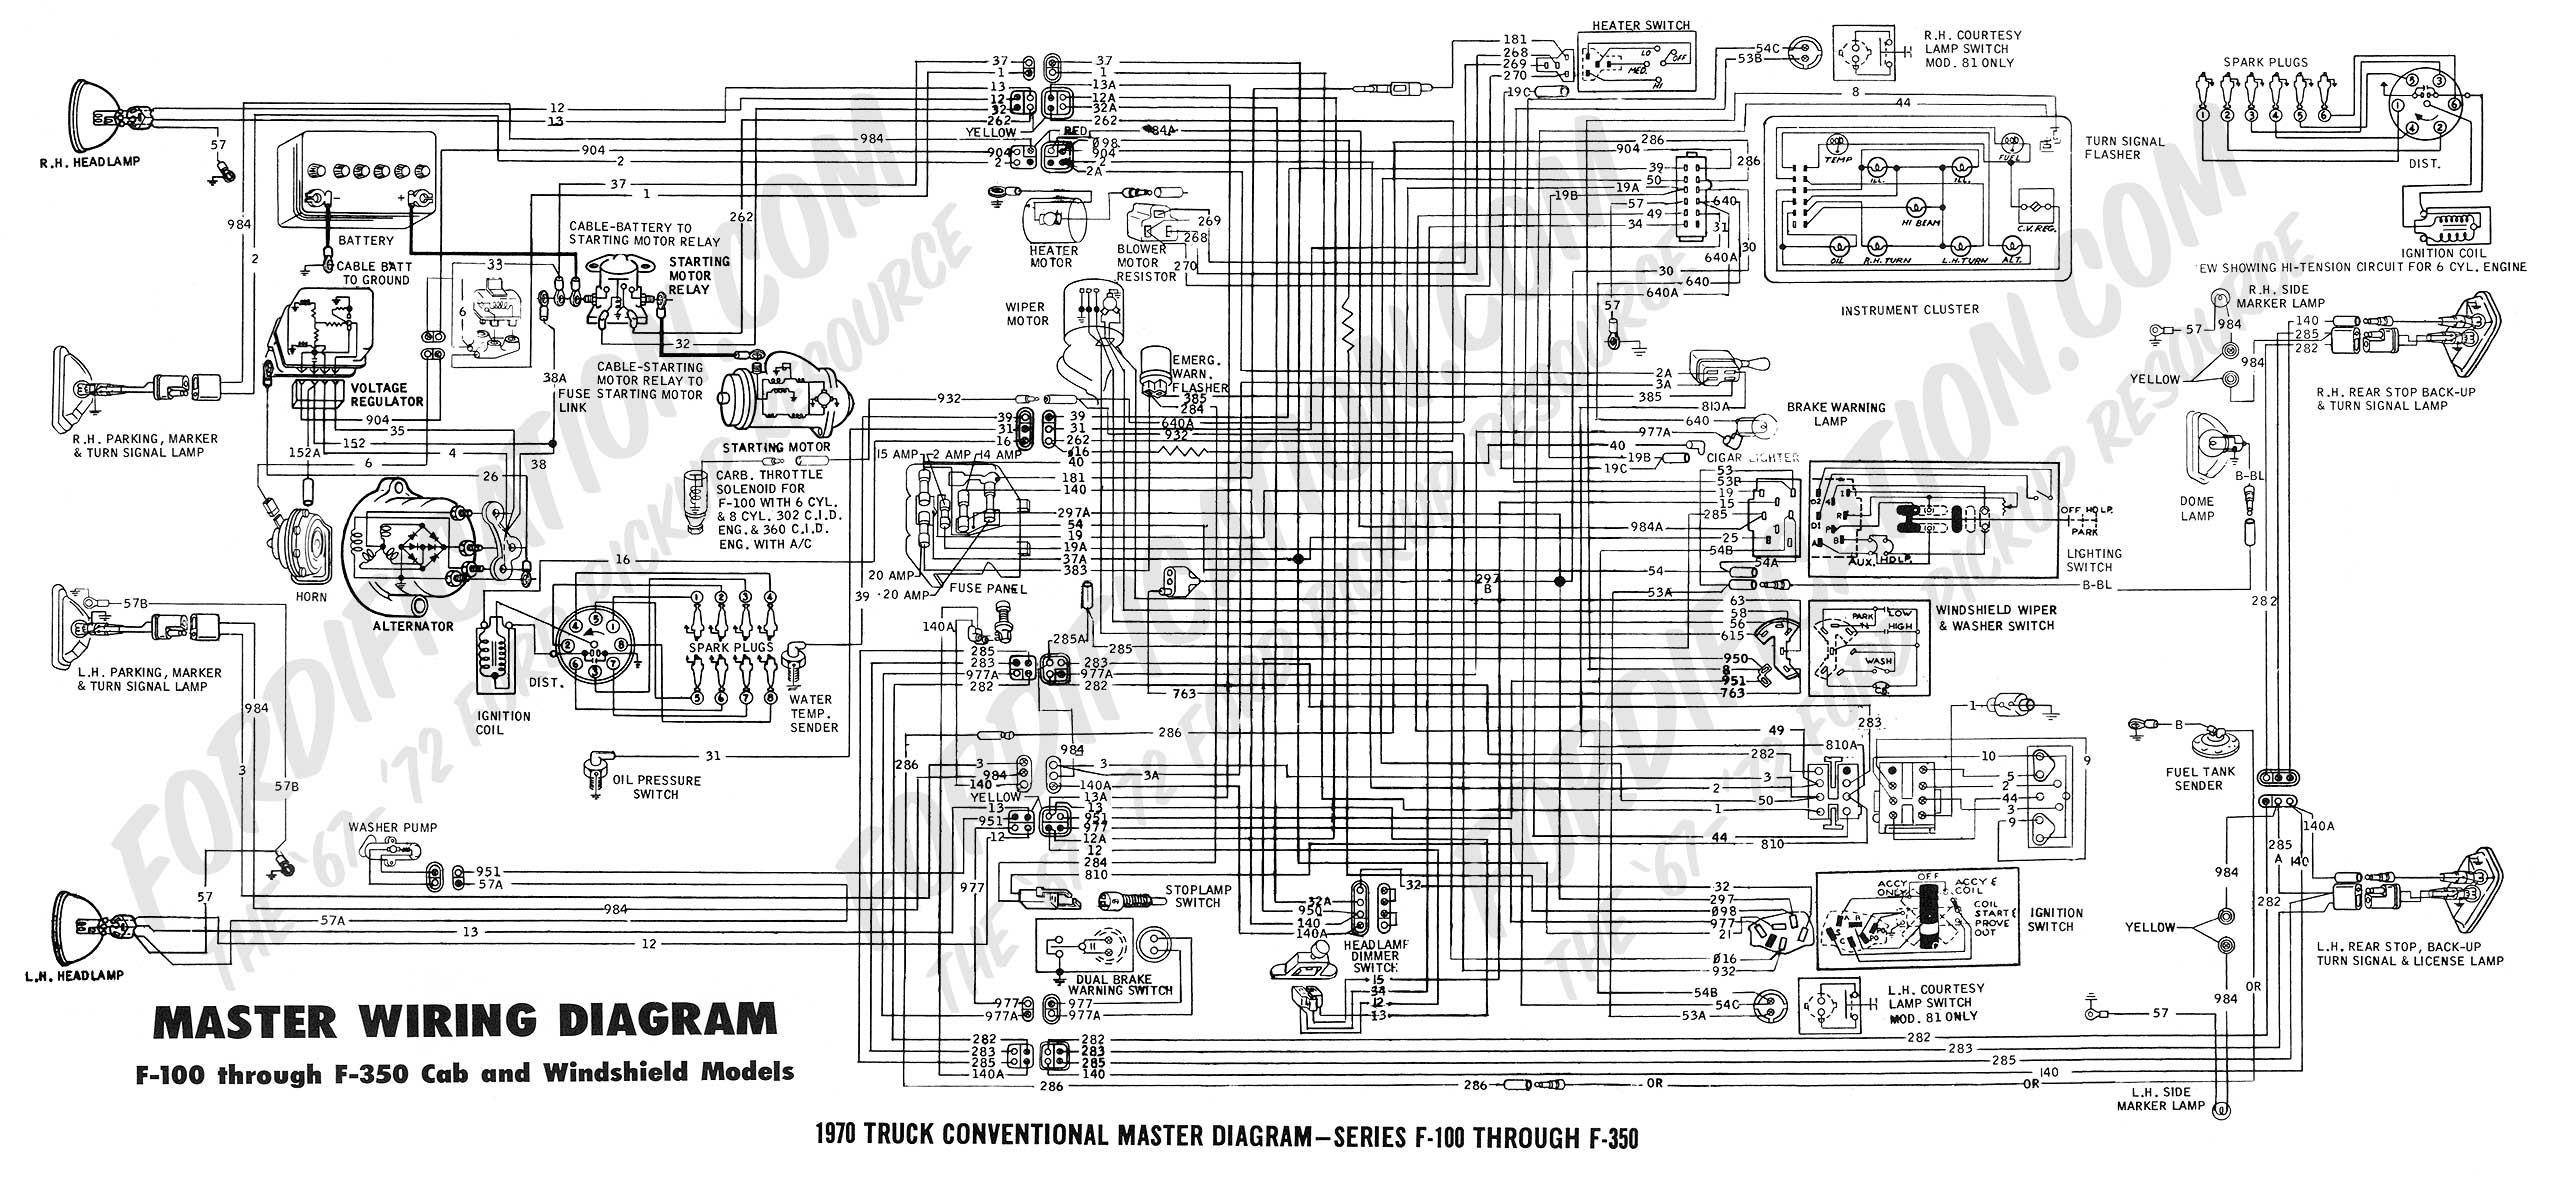 wiring diagram 70_master ford truck technical drawings and schematics section h wiring 2005 mustang gt ignition wiring diagram at virtualis.co